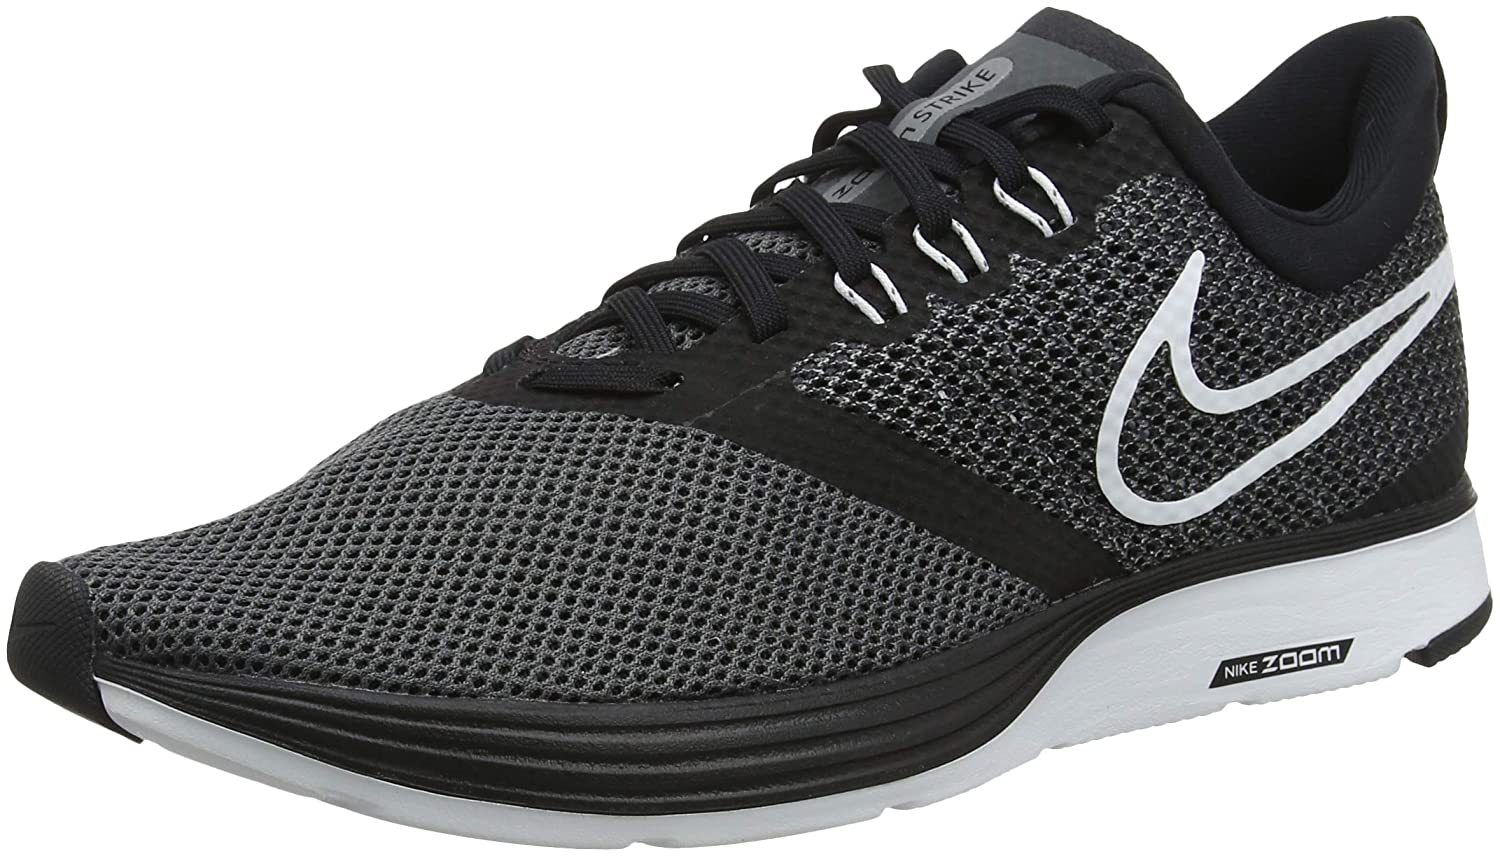 d834fbd997822 Amazon.com  Nike Men s Zoom Strike Running Shoes  Nike  Shoes